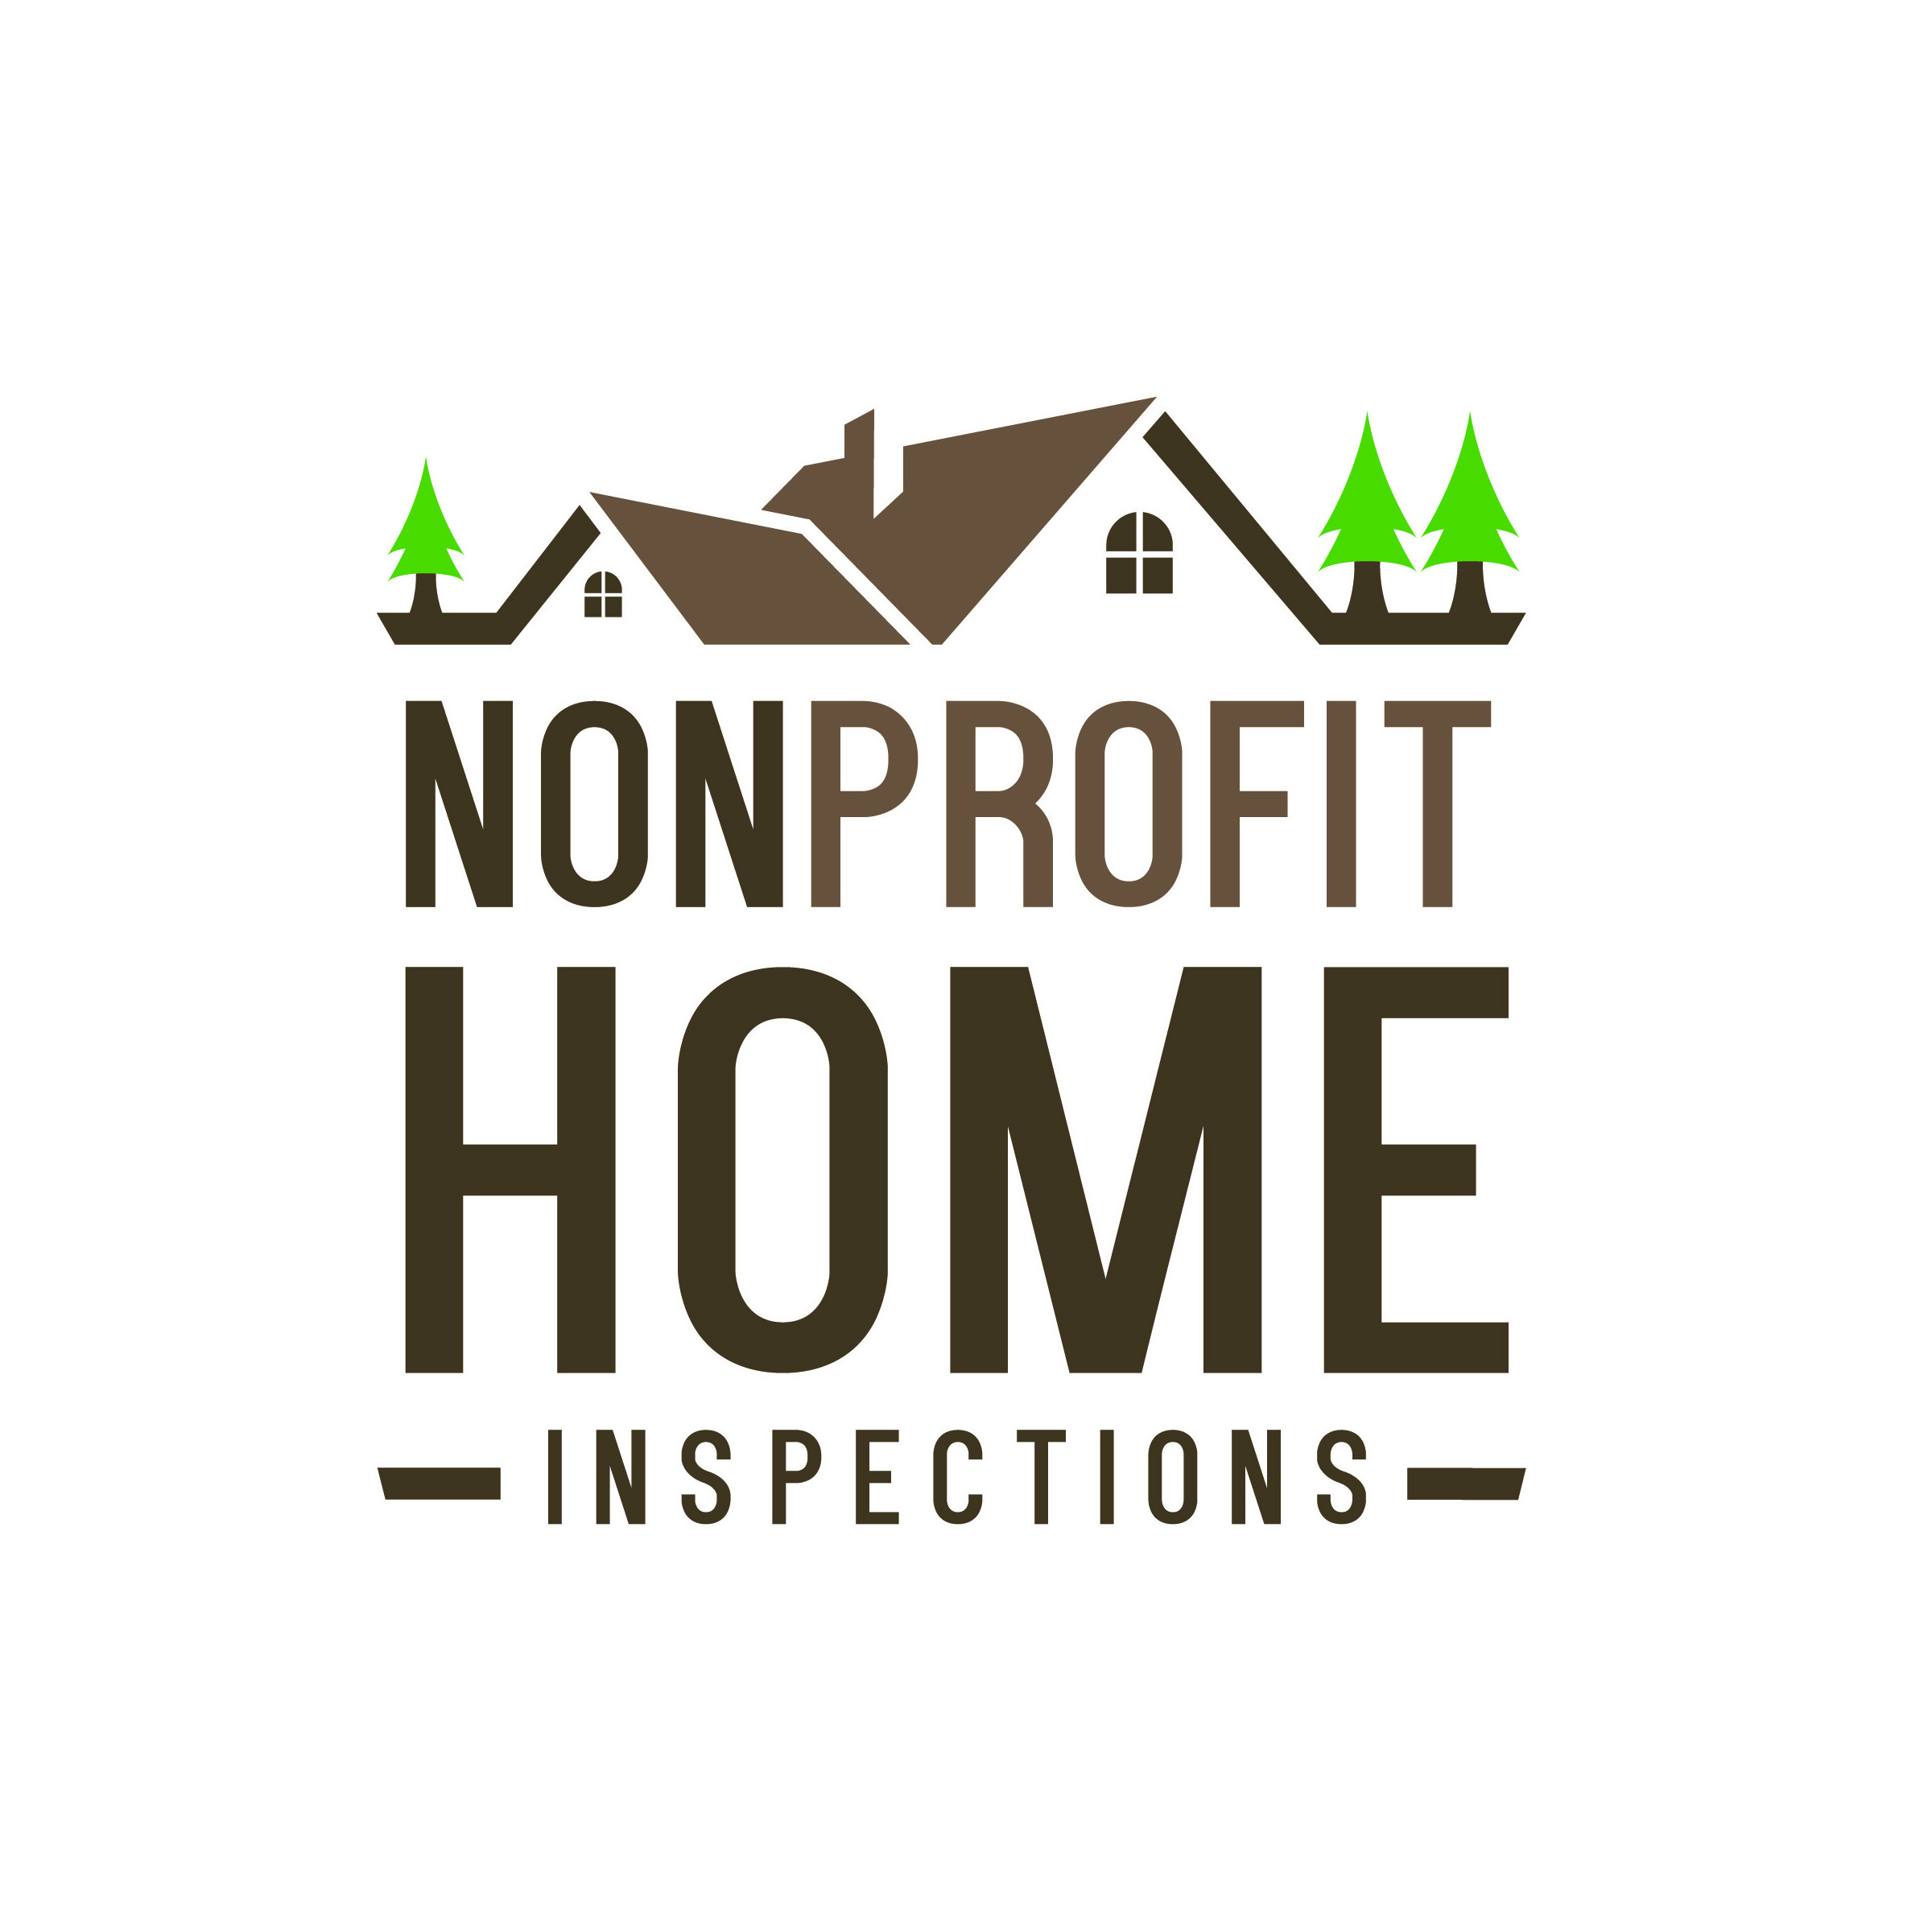 Nonprofit Home Inspections Logo